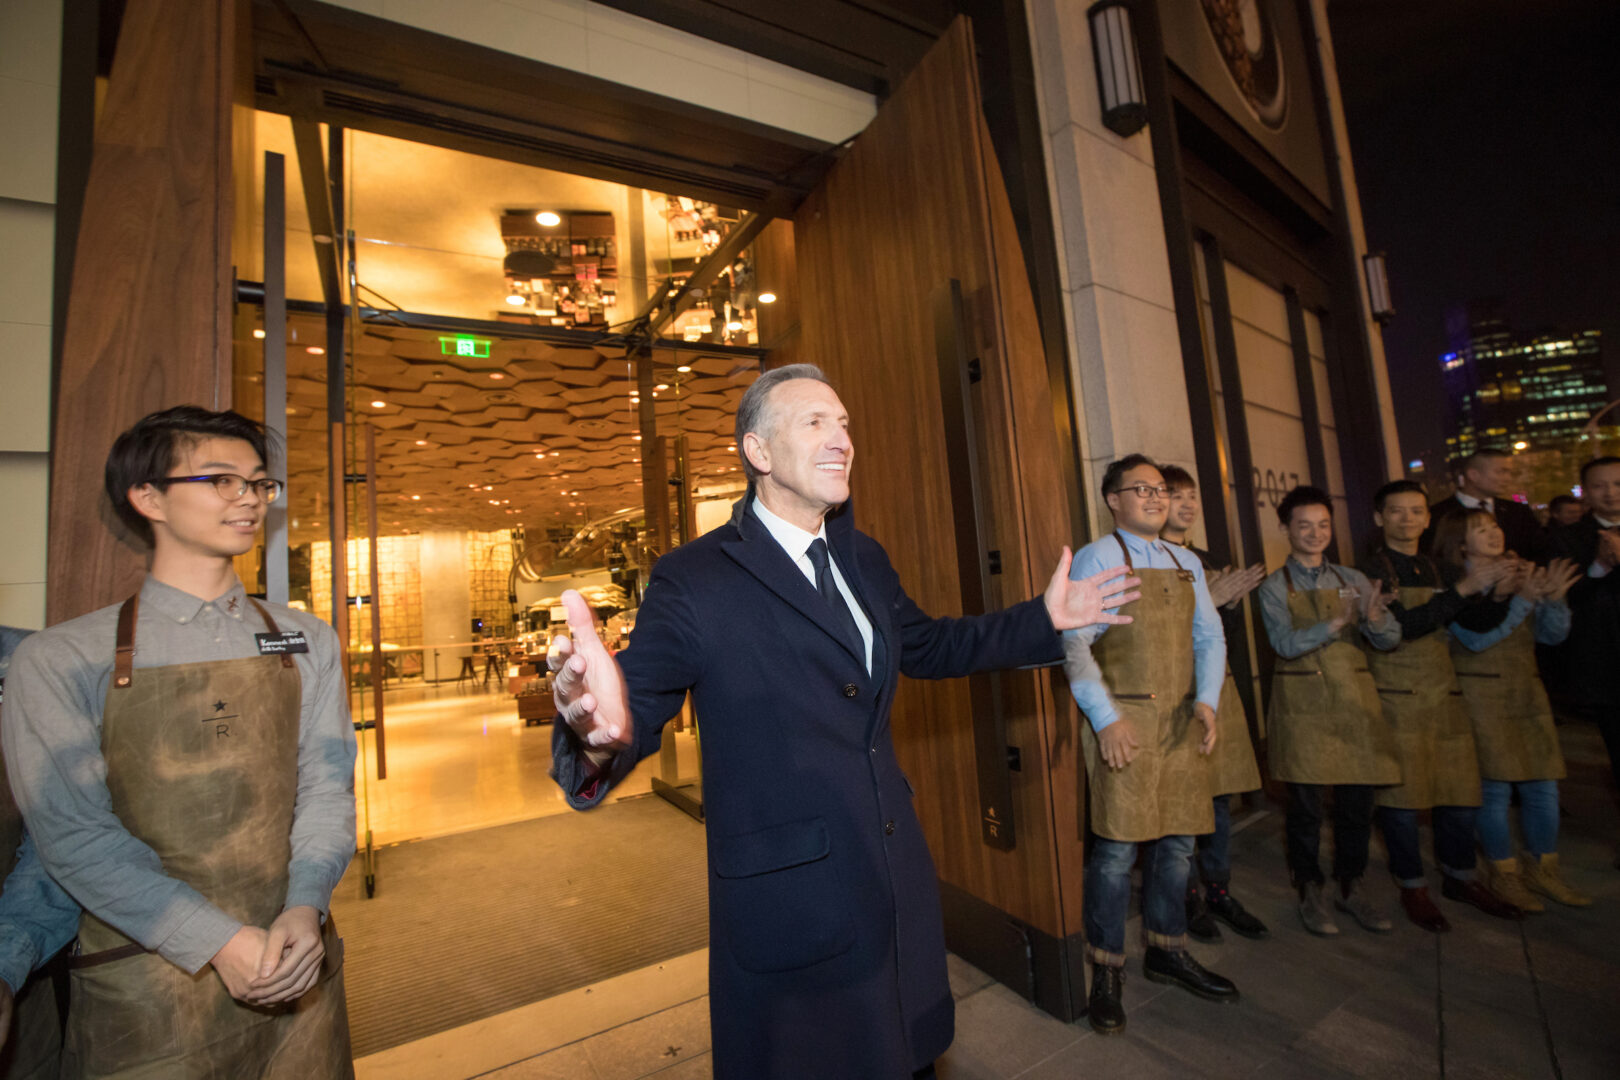 Howard Schultz at the opening of the Starbucks Reserve Roastery in Shanghai